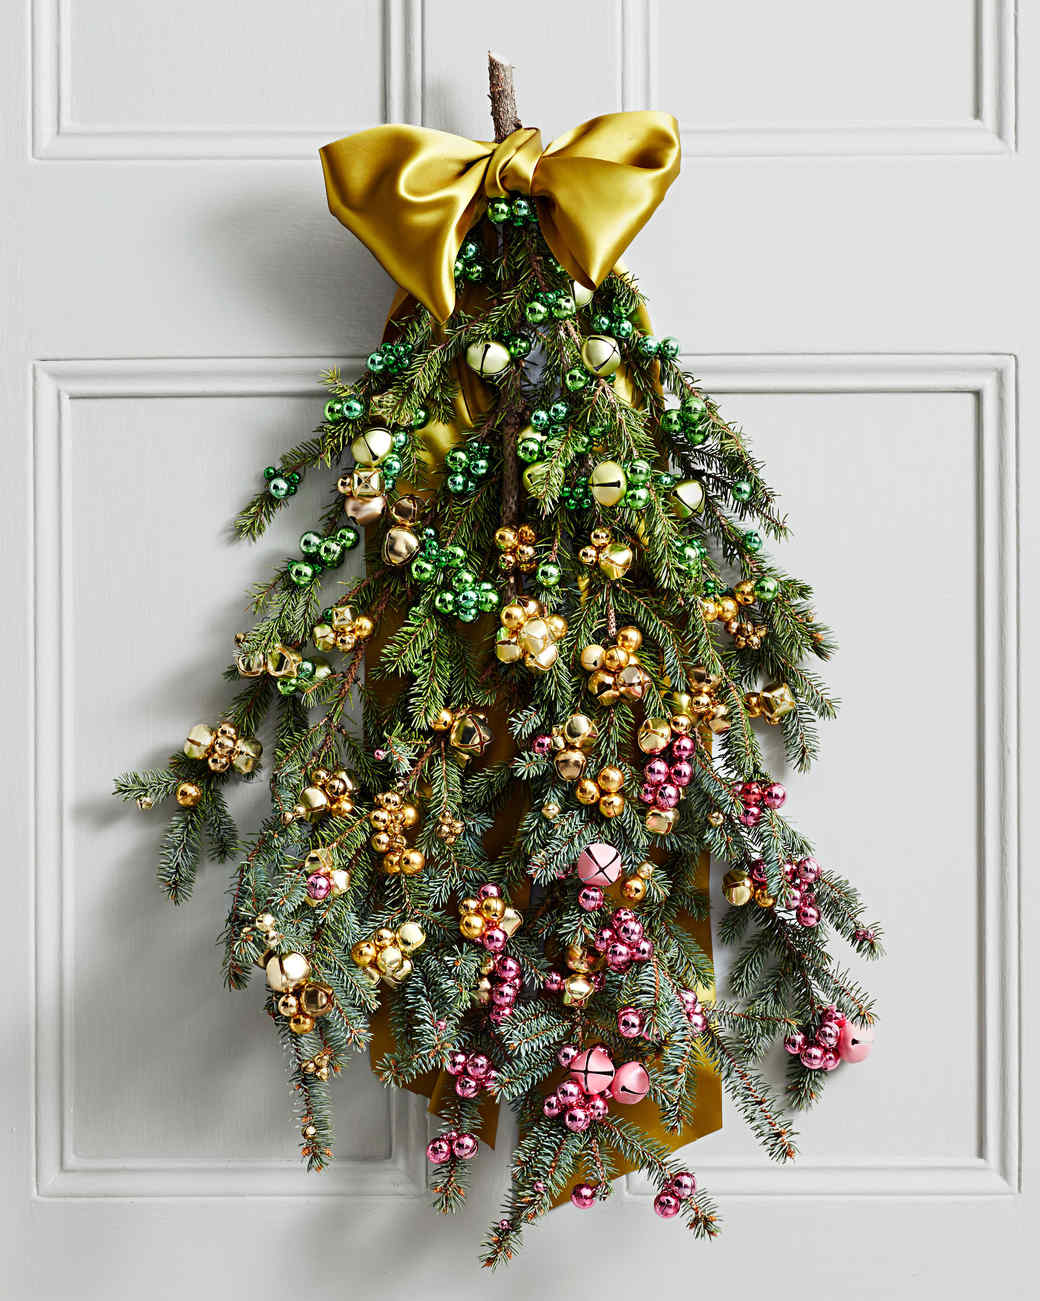 Turn extra greenery into a beautiful piece of jingling ombre decor! https://t.co/cOA7BZS3NF https://t.co/df8LomgyRJ